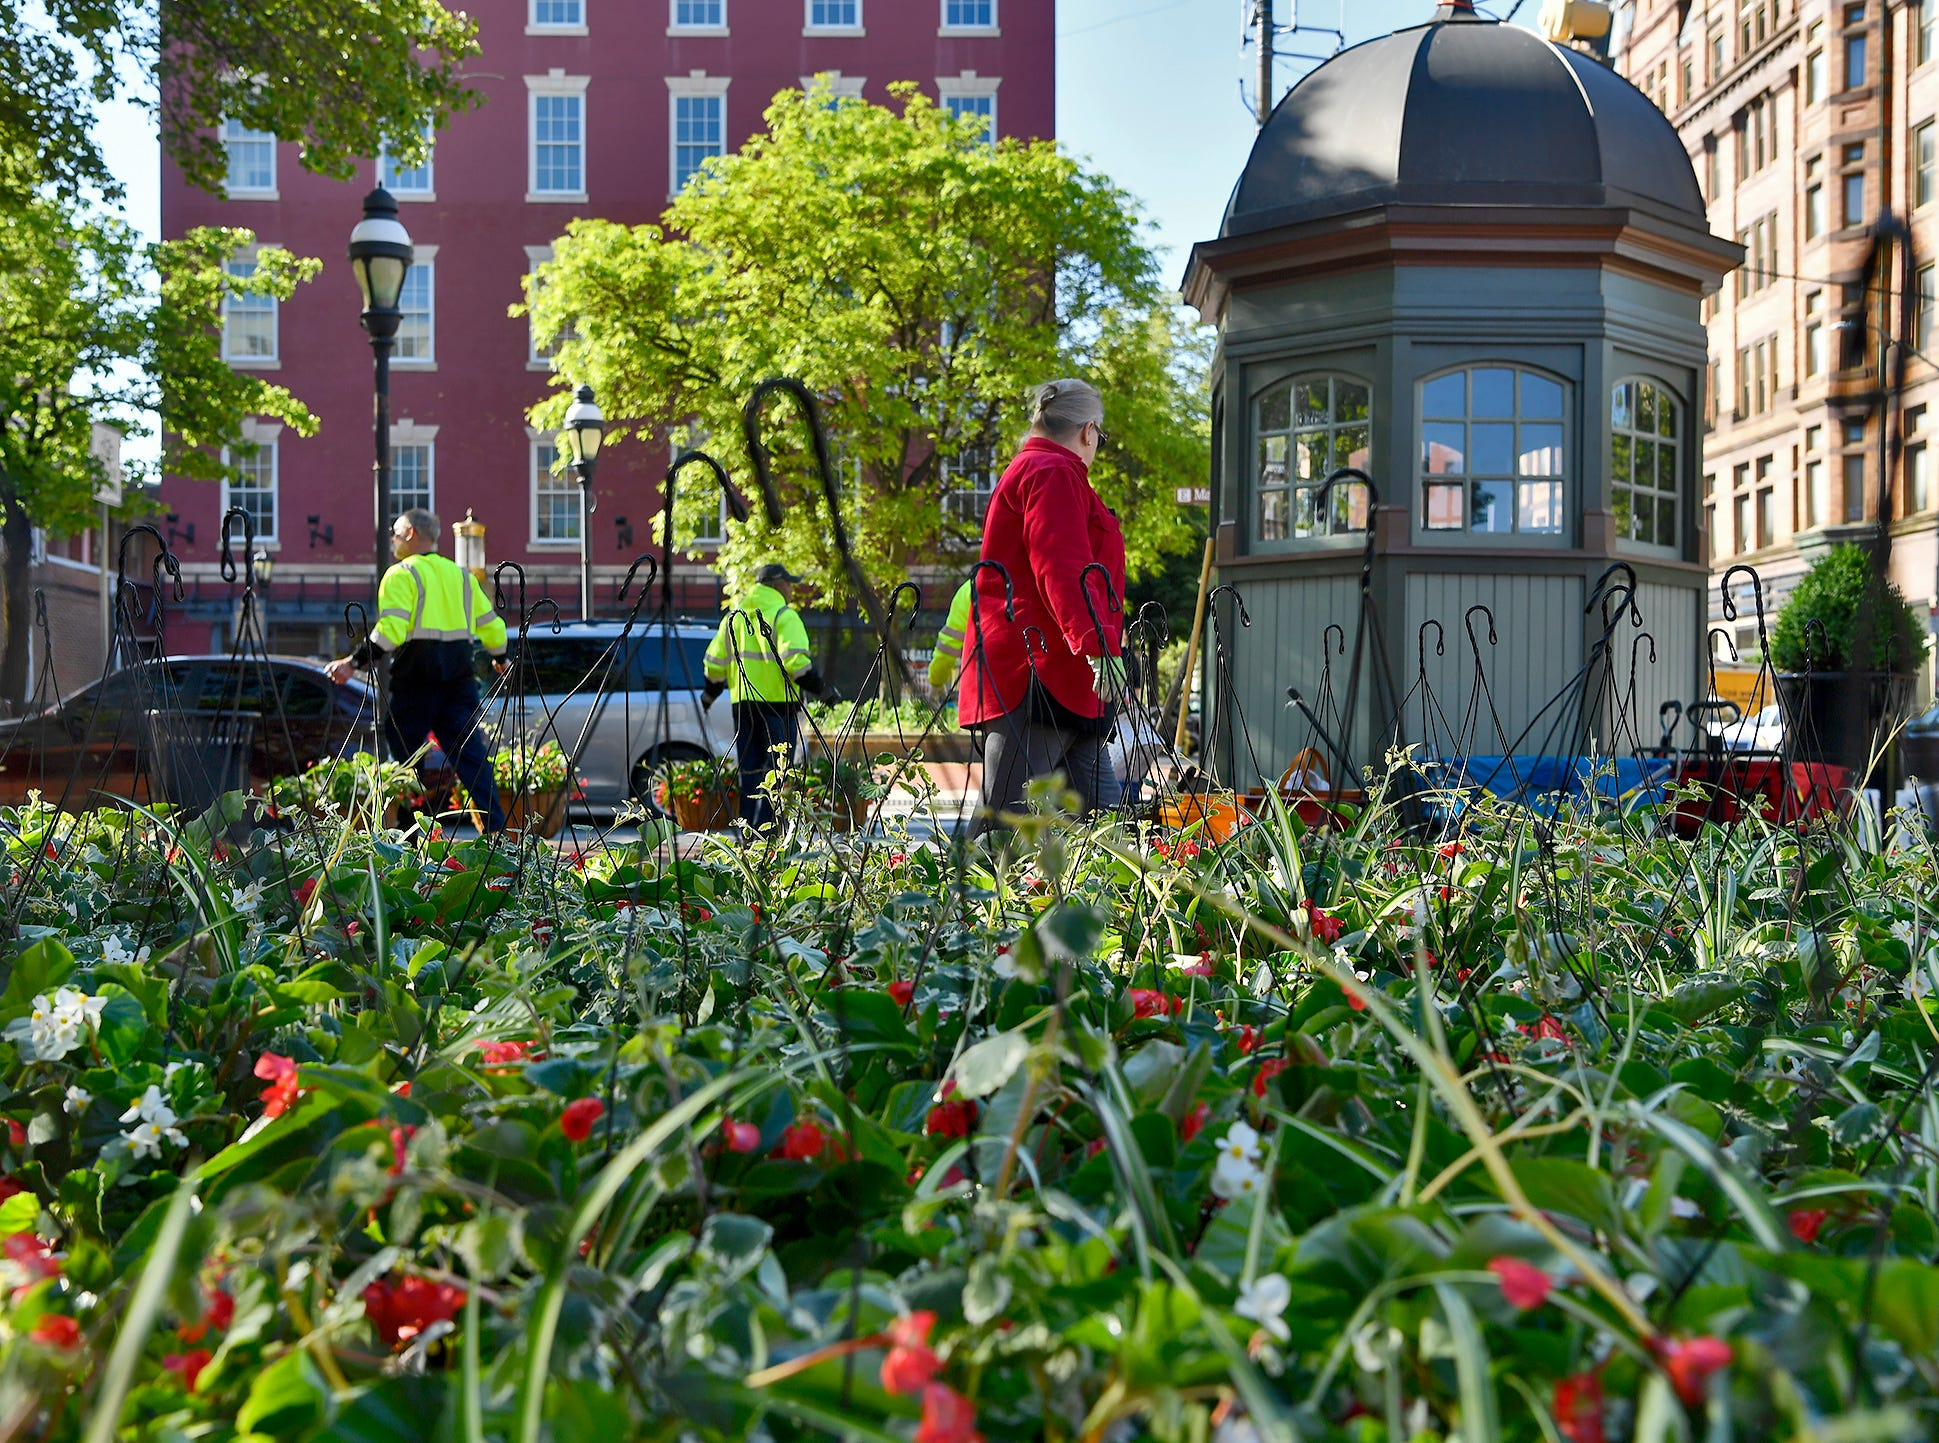 Downtown York becomes a bit more colorful as the Garden Club of York, along with Downtown Inc. and the City of York, fill planters and hang baskets of flowers, Wednesday, May 15, 2019.John A. Pavoncello photo